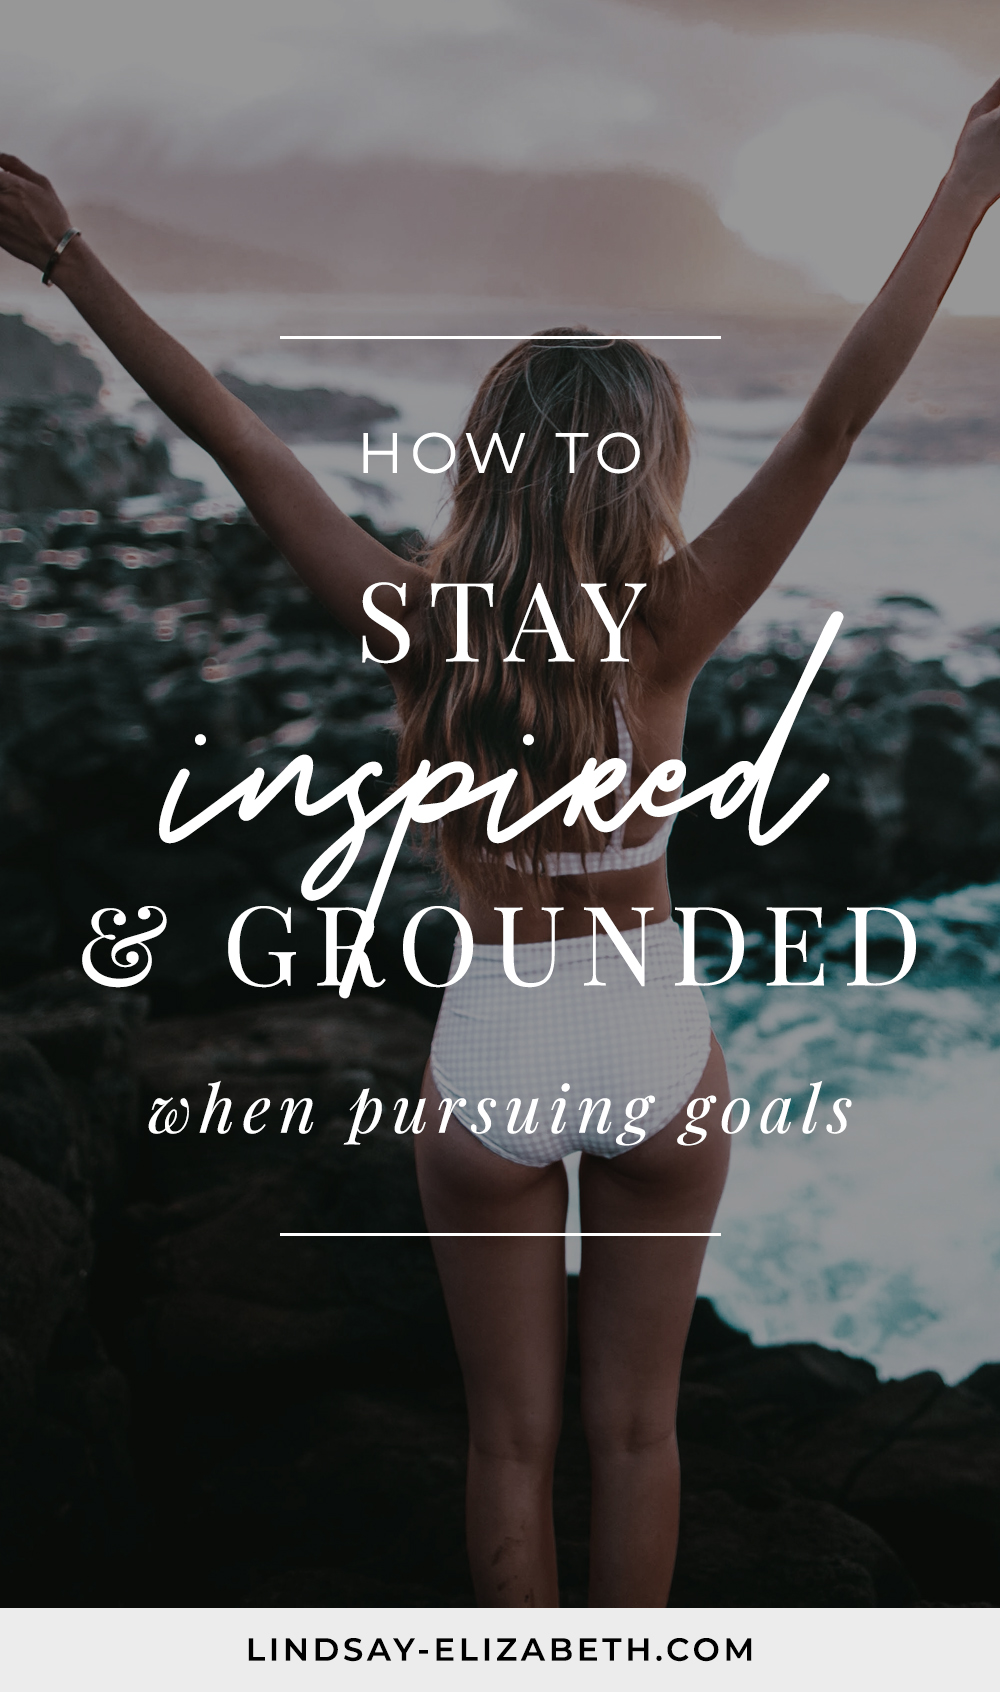 It's easy to be fired up and excited when you set a new goal. The challenge is in maintaining that momentum throughout the journey. While every goal will have its challenges, there are some key things you can do to keep your mindset in the right place so you don't burn out before you get there. Try these tips to stay inspired when pursuing goals (especially the big ones)! #goalsetting #manifestation #lifehacks #selfgrowth